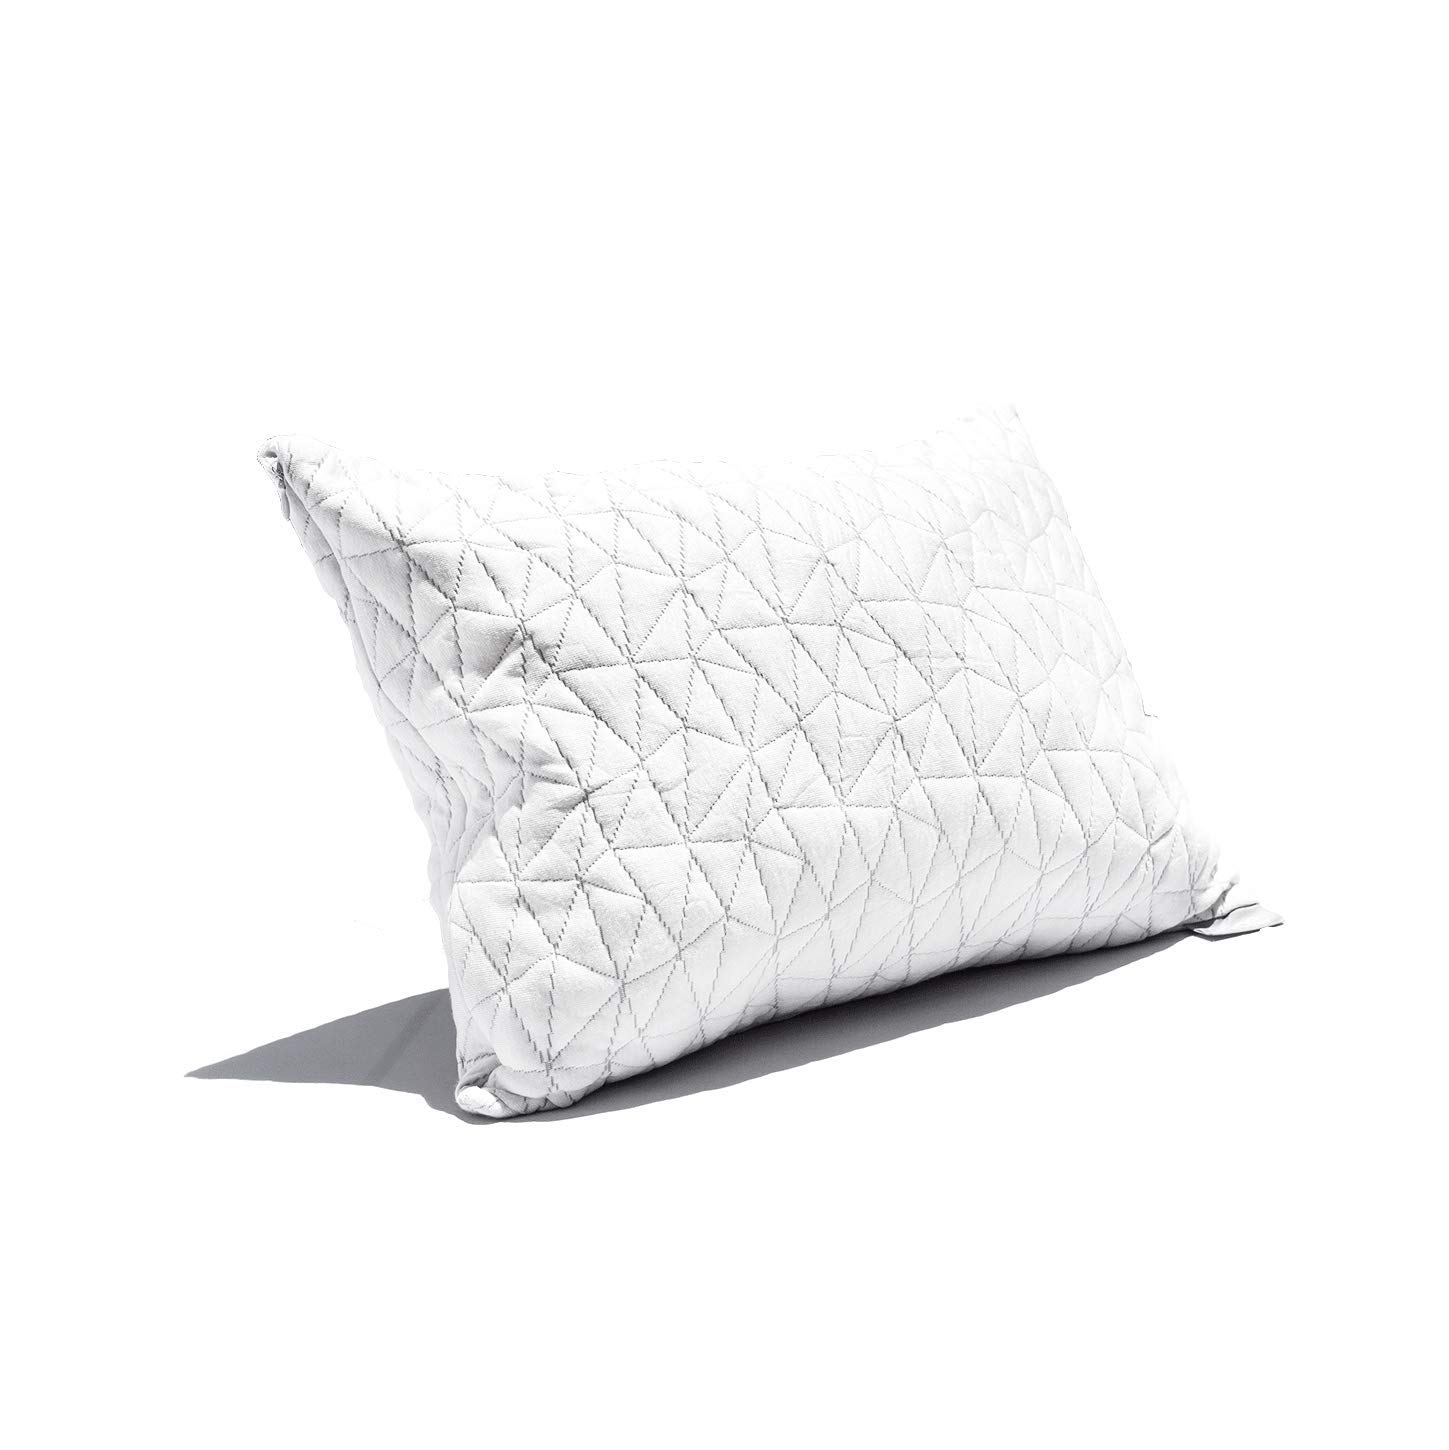 Coop Home Goods Shredded Memory Foam Toddler Pillow 14x19 Adjustable Hypoallergenic & Breathable Little Pillow-Made in The USA CHG-TD-SMF